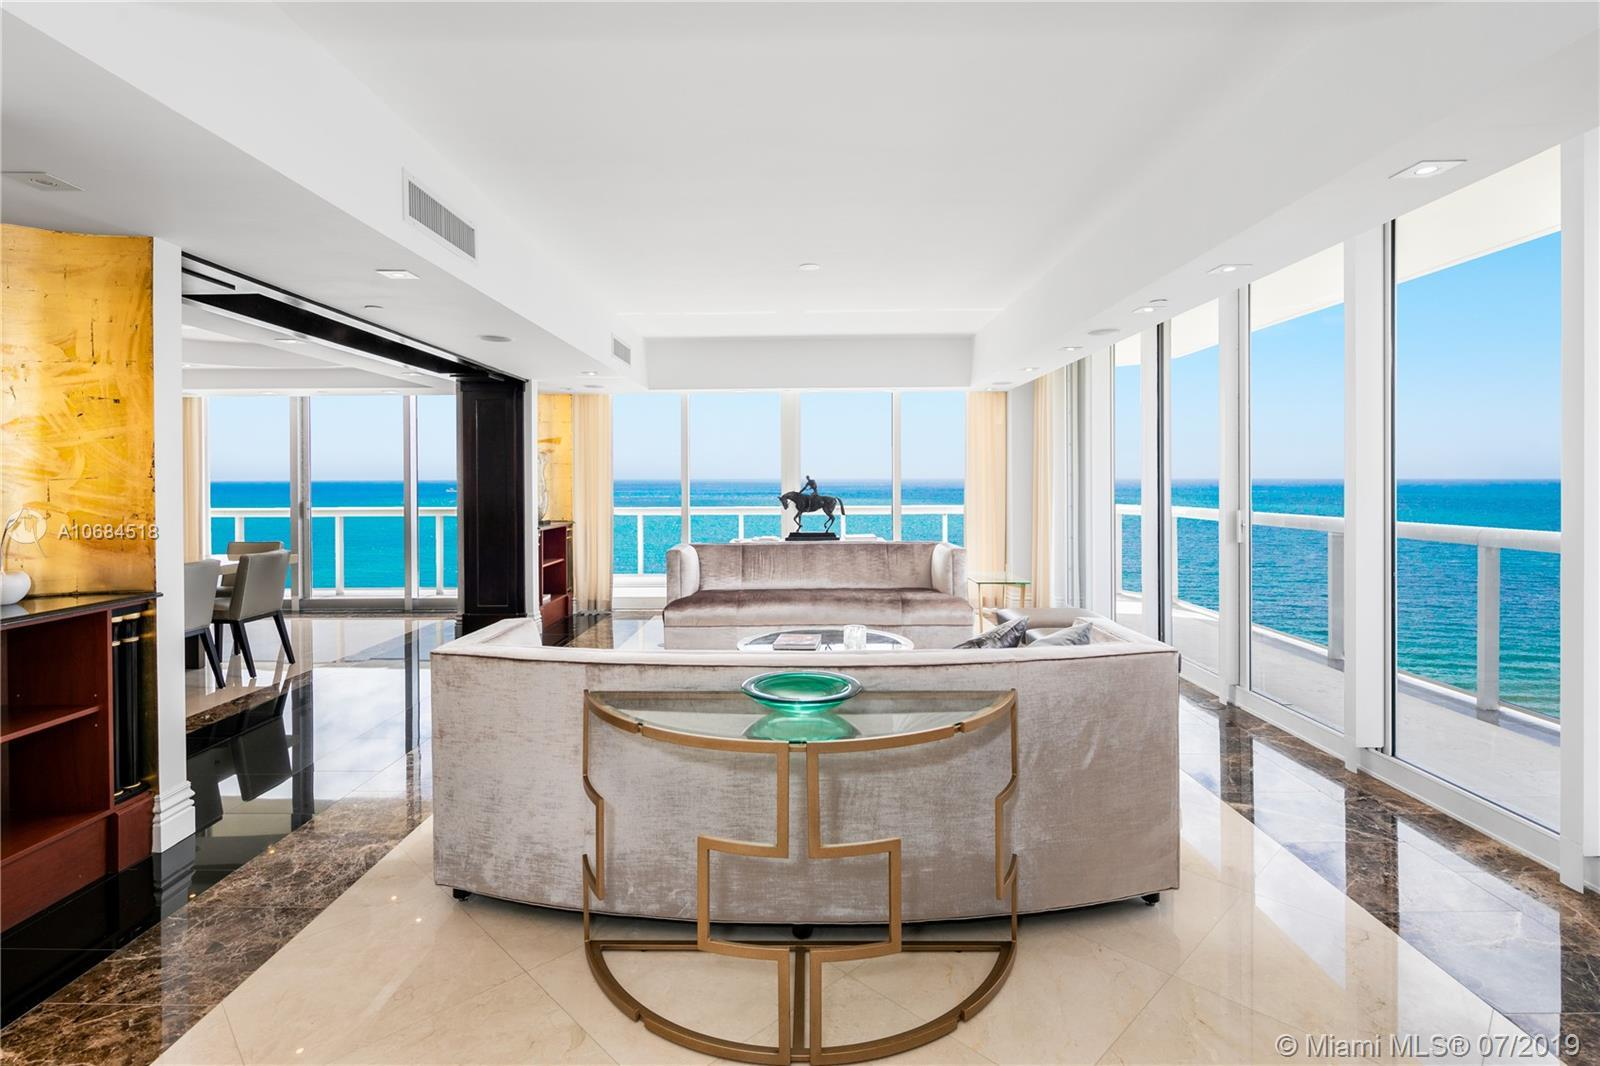 One-of-a-kind unit at the luxury Solimar in Surfside. Owner combined 3 units from the developer and